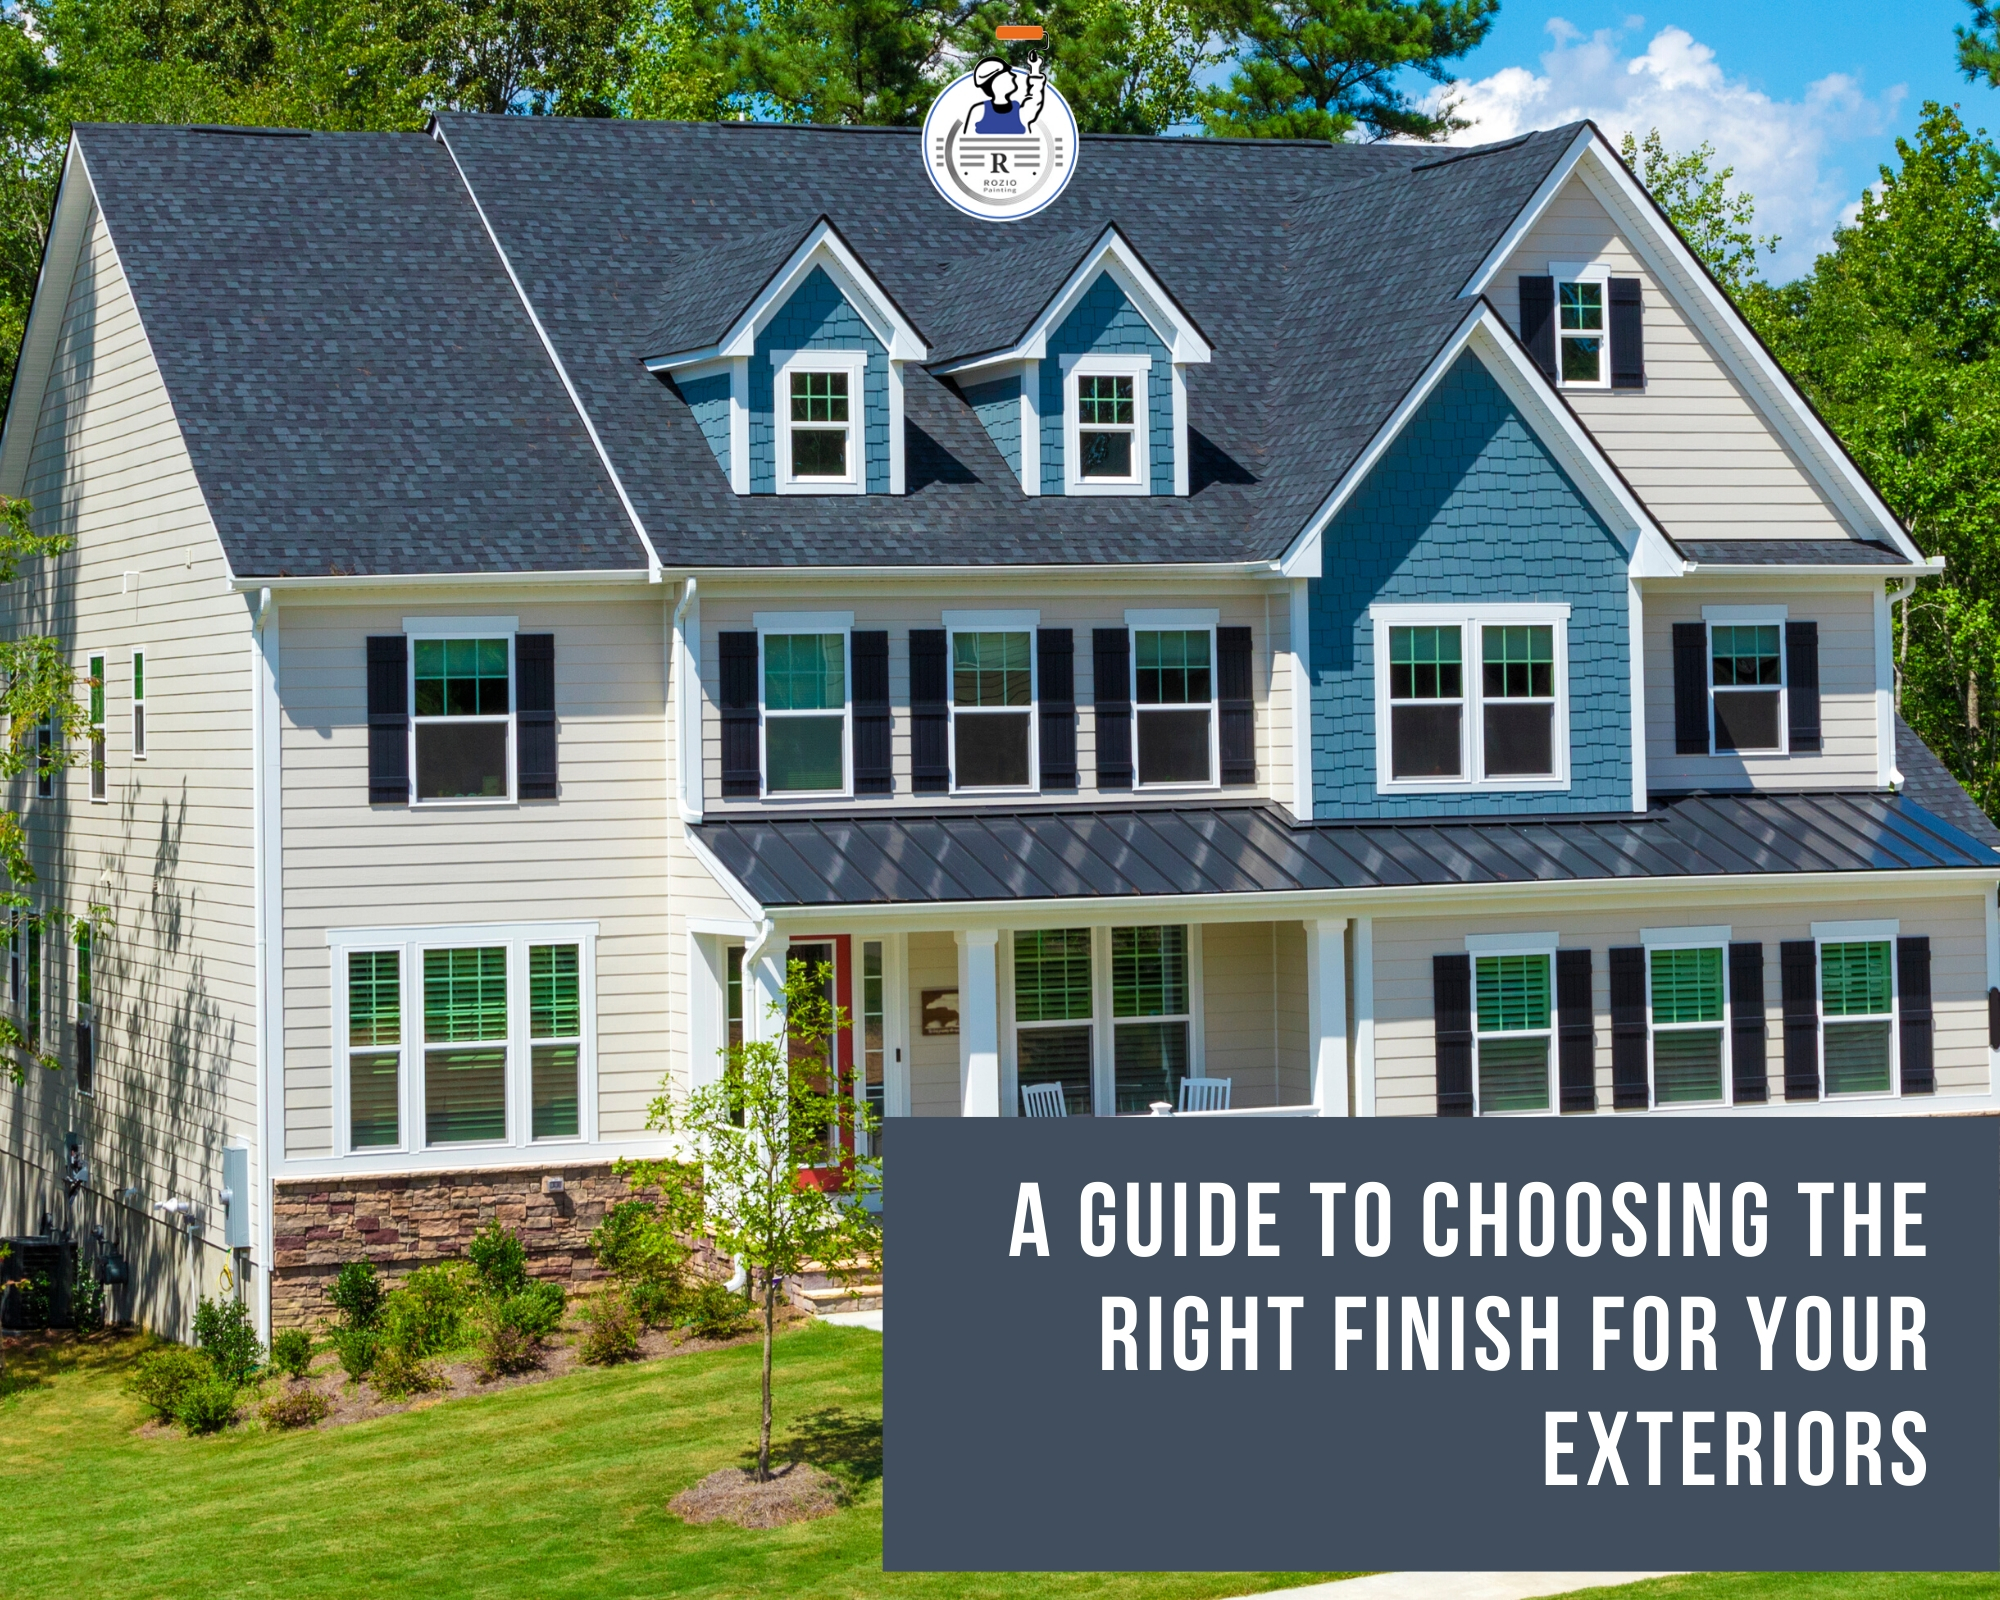 A guide to choosing the right finish for your exteriors